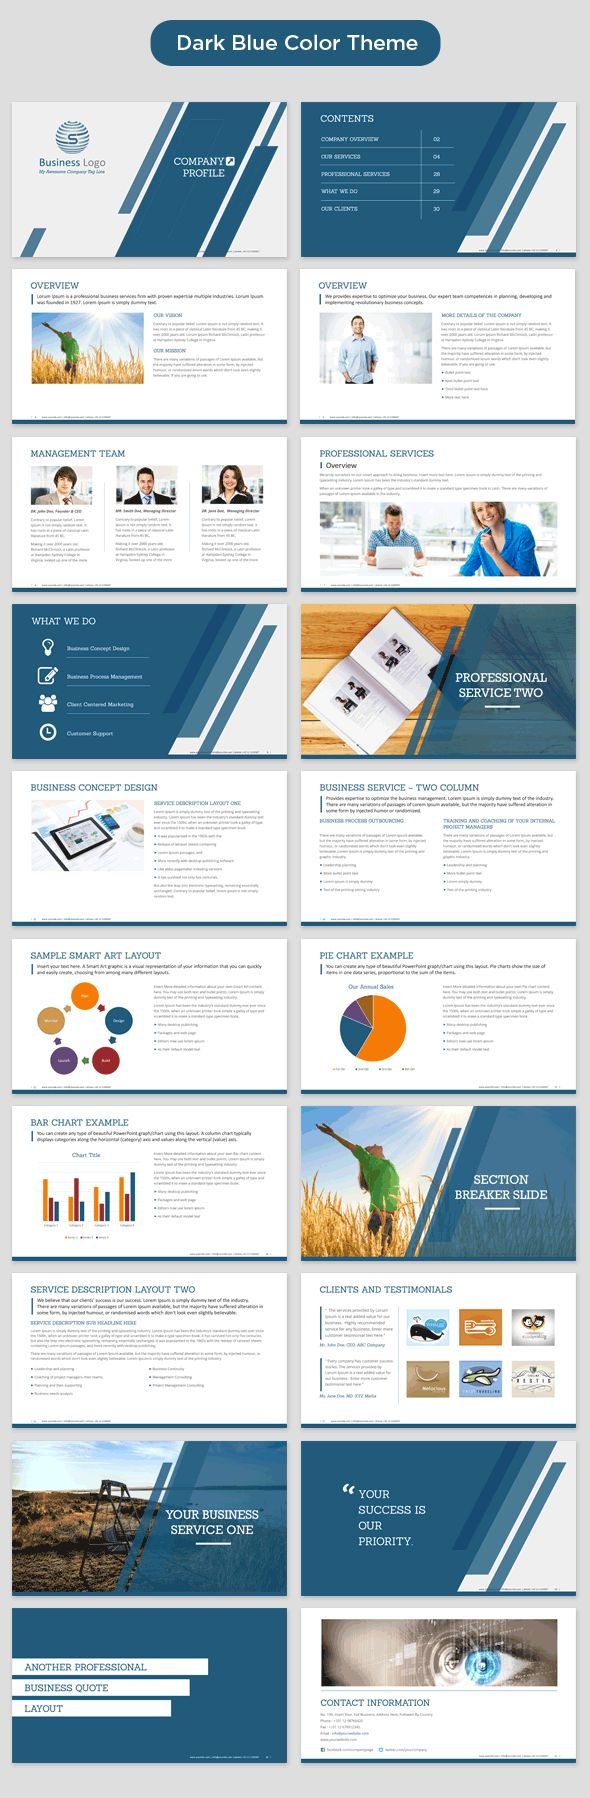 Best 25 company presentation ideas on pinterest data company profile powerpoint template dark blue preview toneelgroepblik